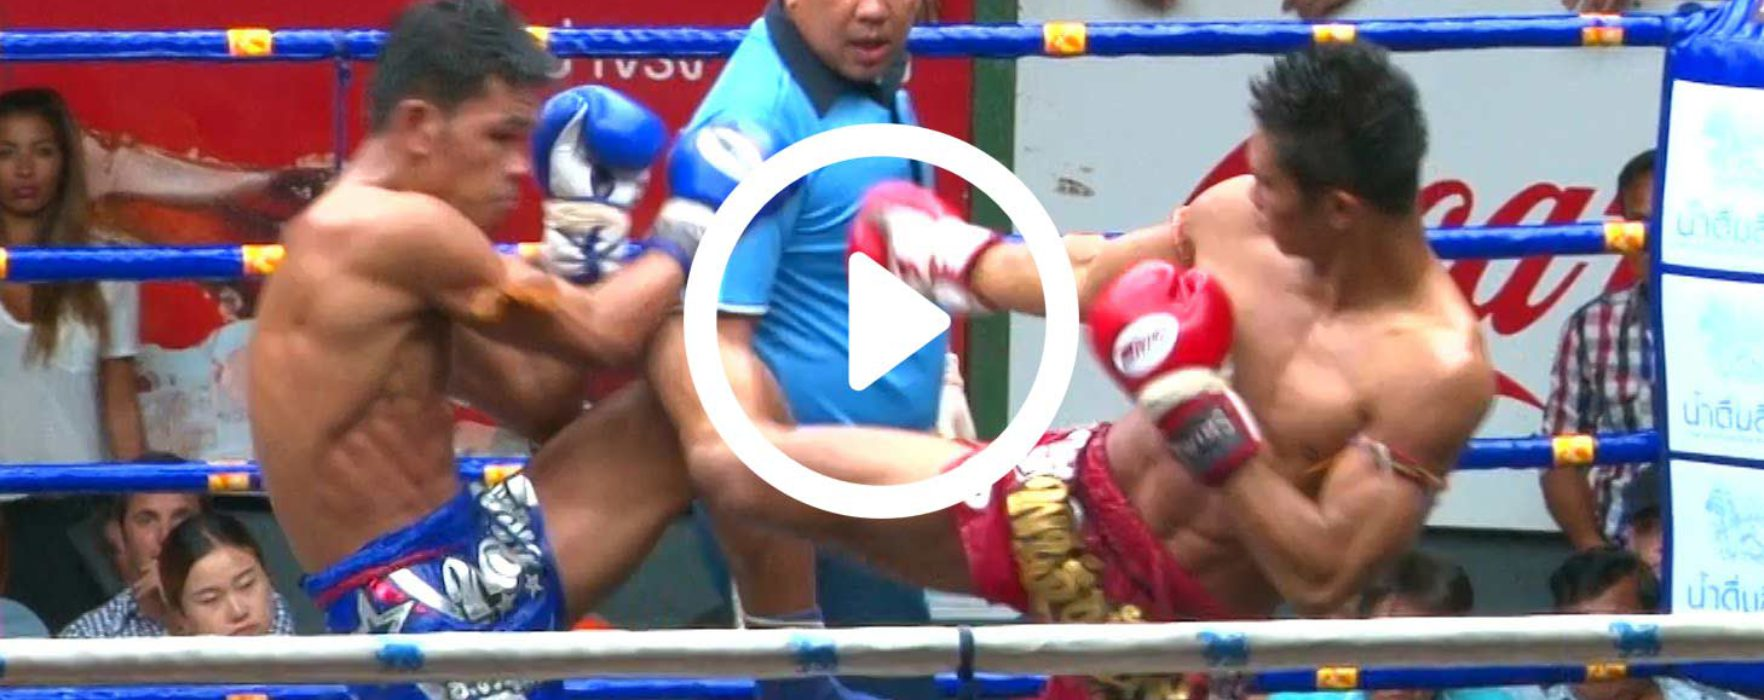 (English) Videos / Results: Panpayak vs Ponake & more – Rajadamnern – 22nd August 2016